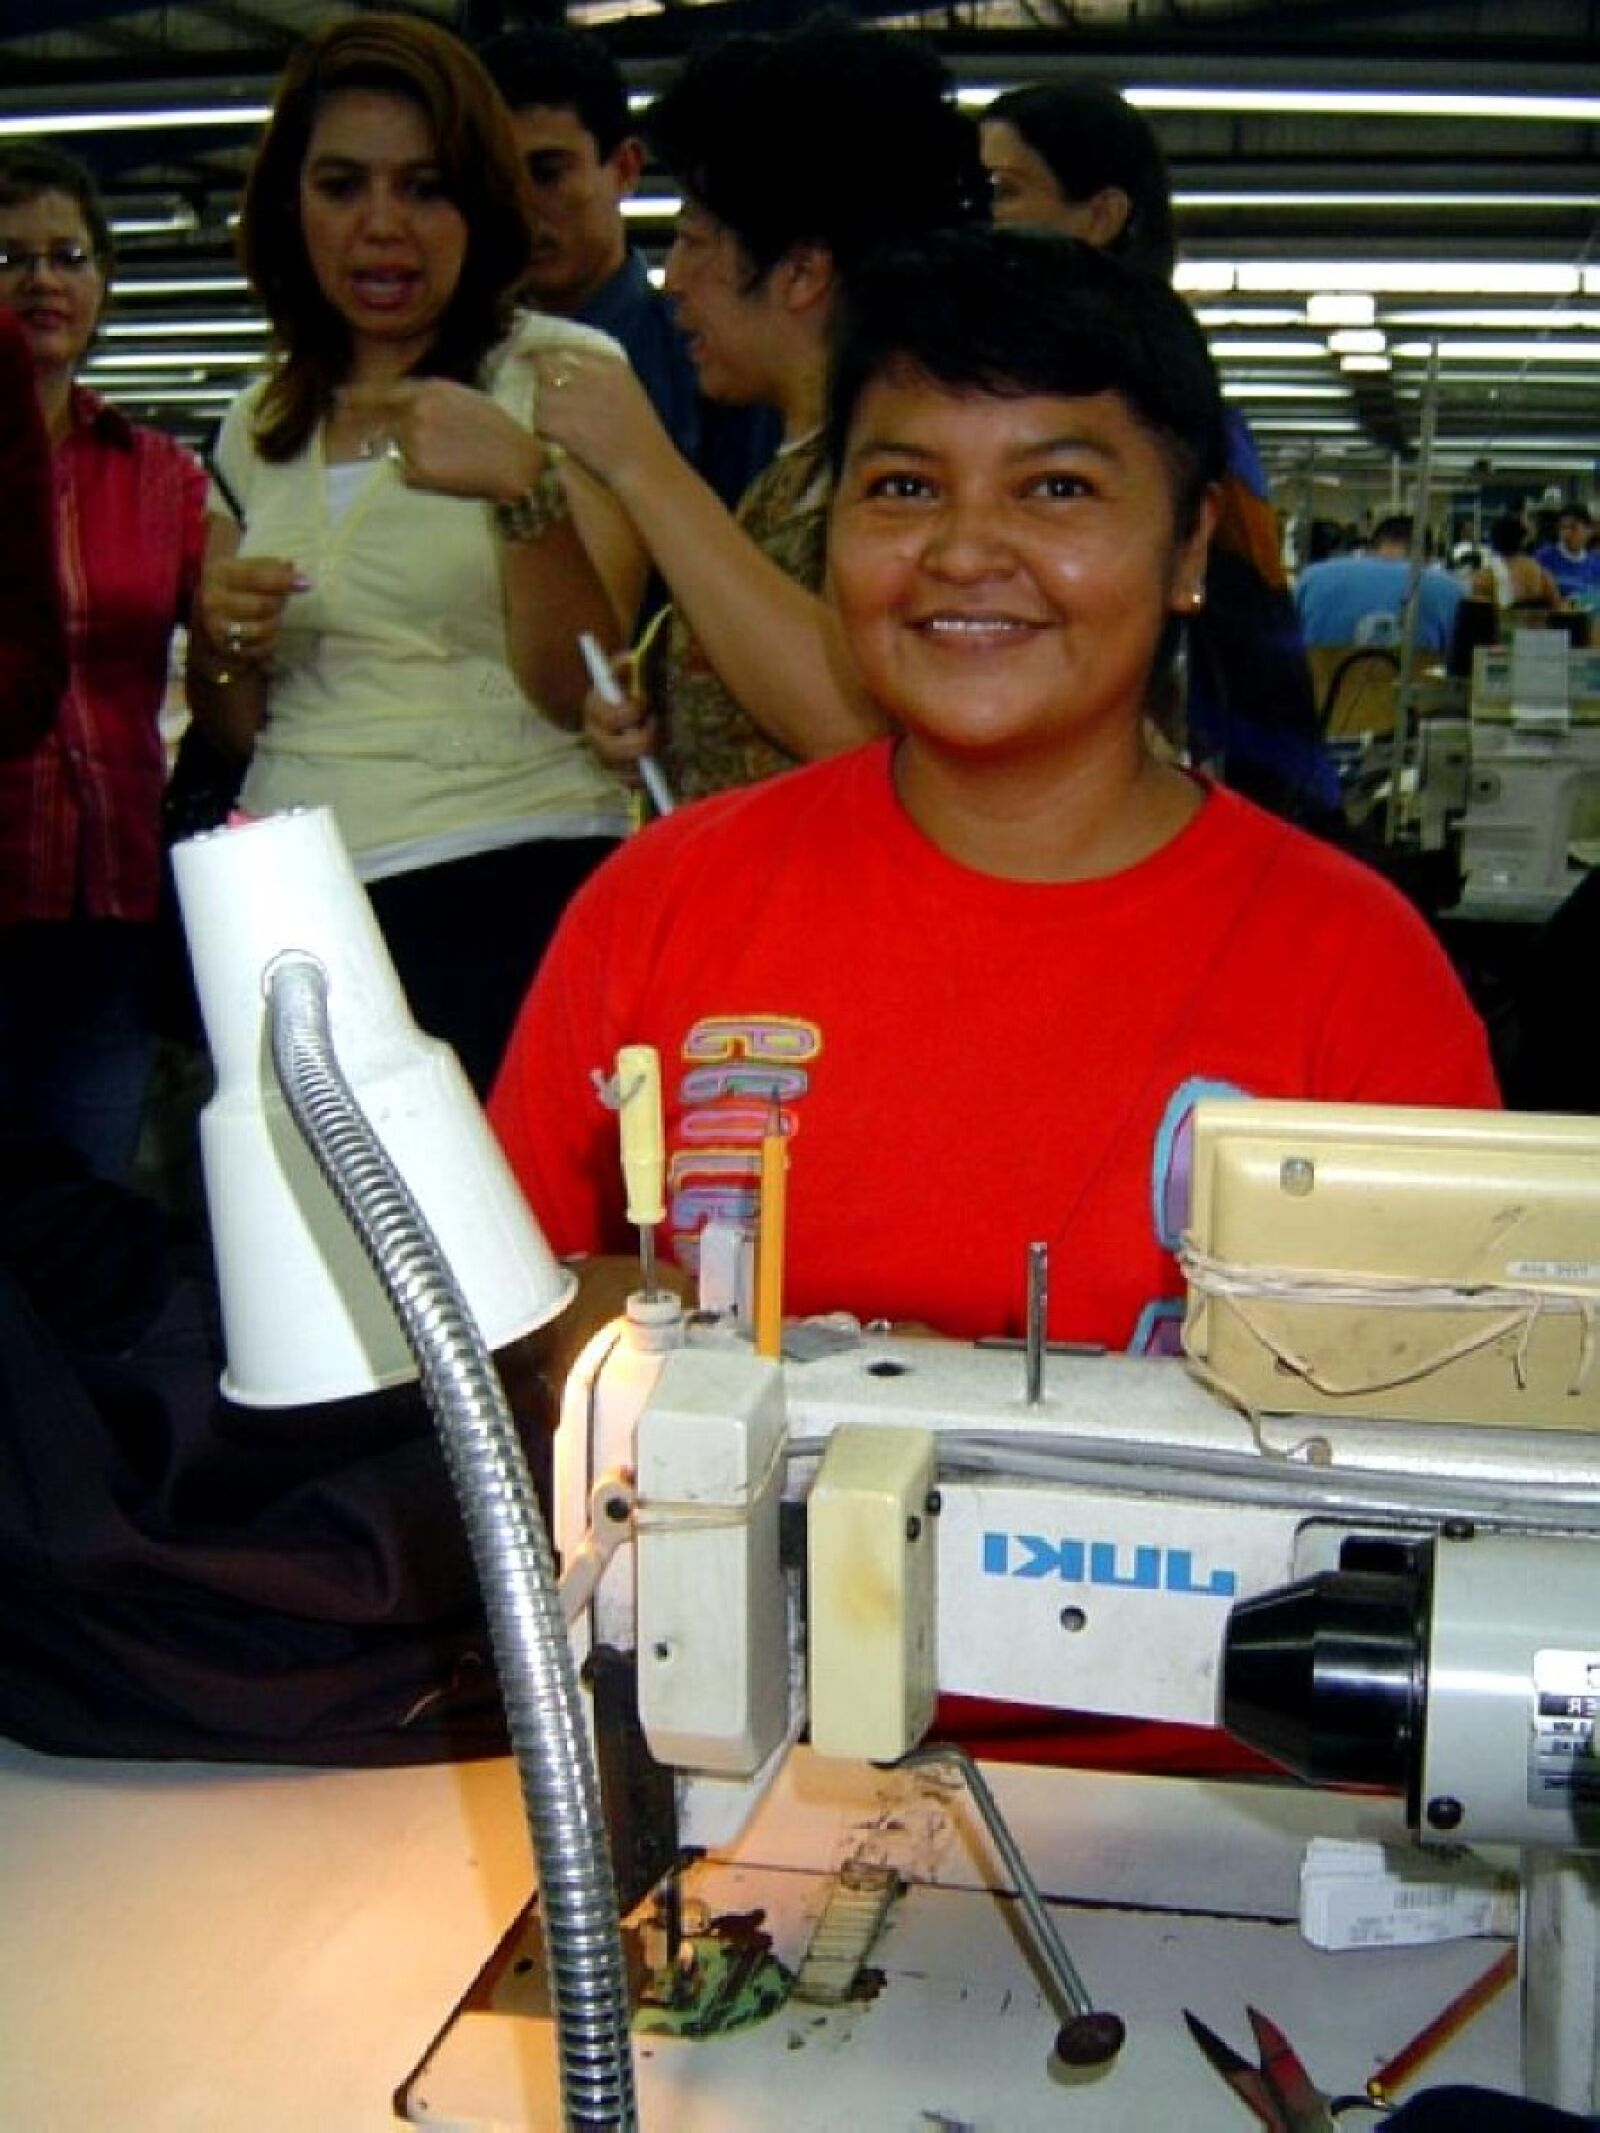 """Sony DSC-P72 sample photo. """"Worker, woman, nicaragua, workplace"""" photography"""